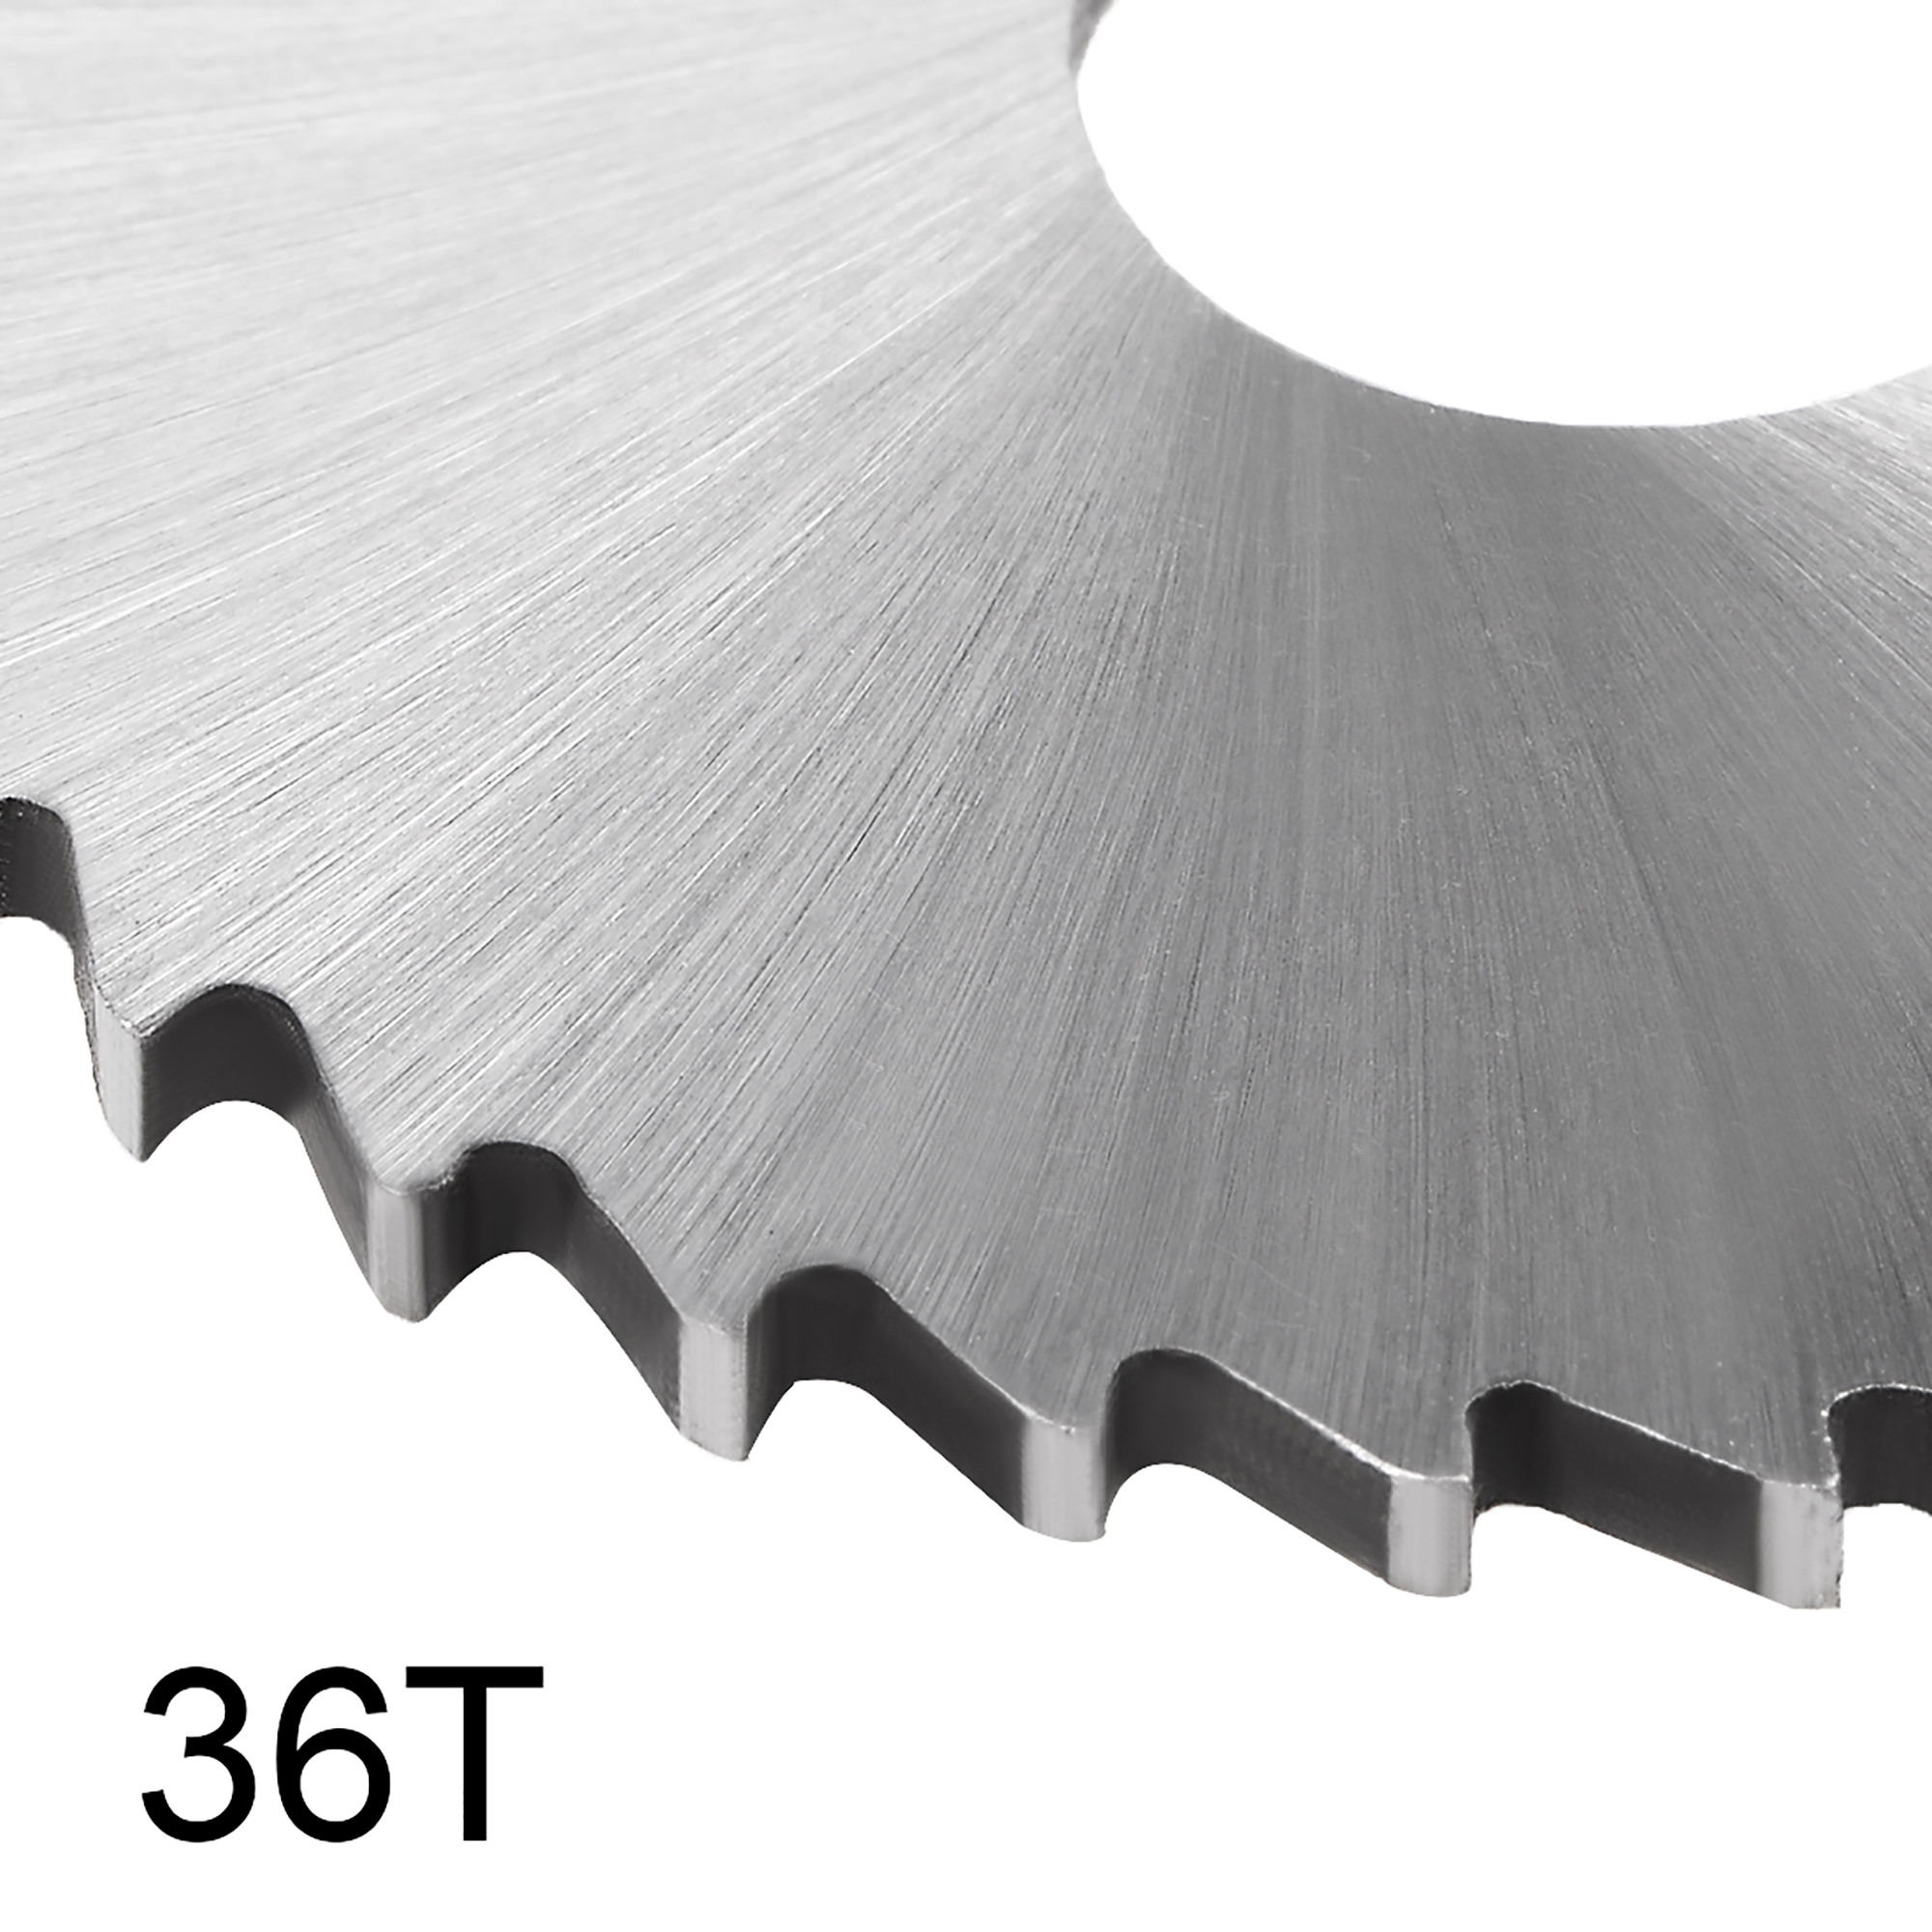 HSS Saw Blade, 60mm 36 Tooth Circular Cutting Wheel 2.5mm Thick w 16mm Arbor - image 1 of 3